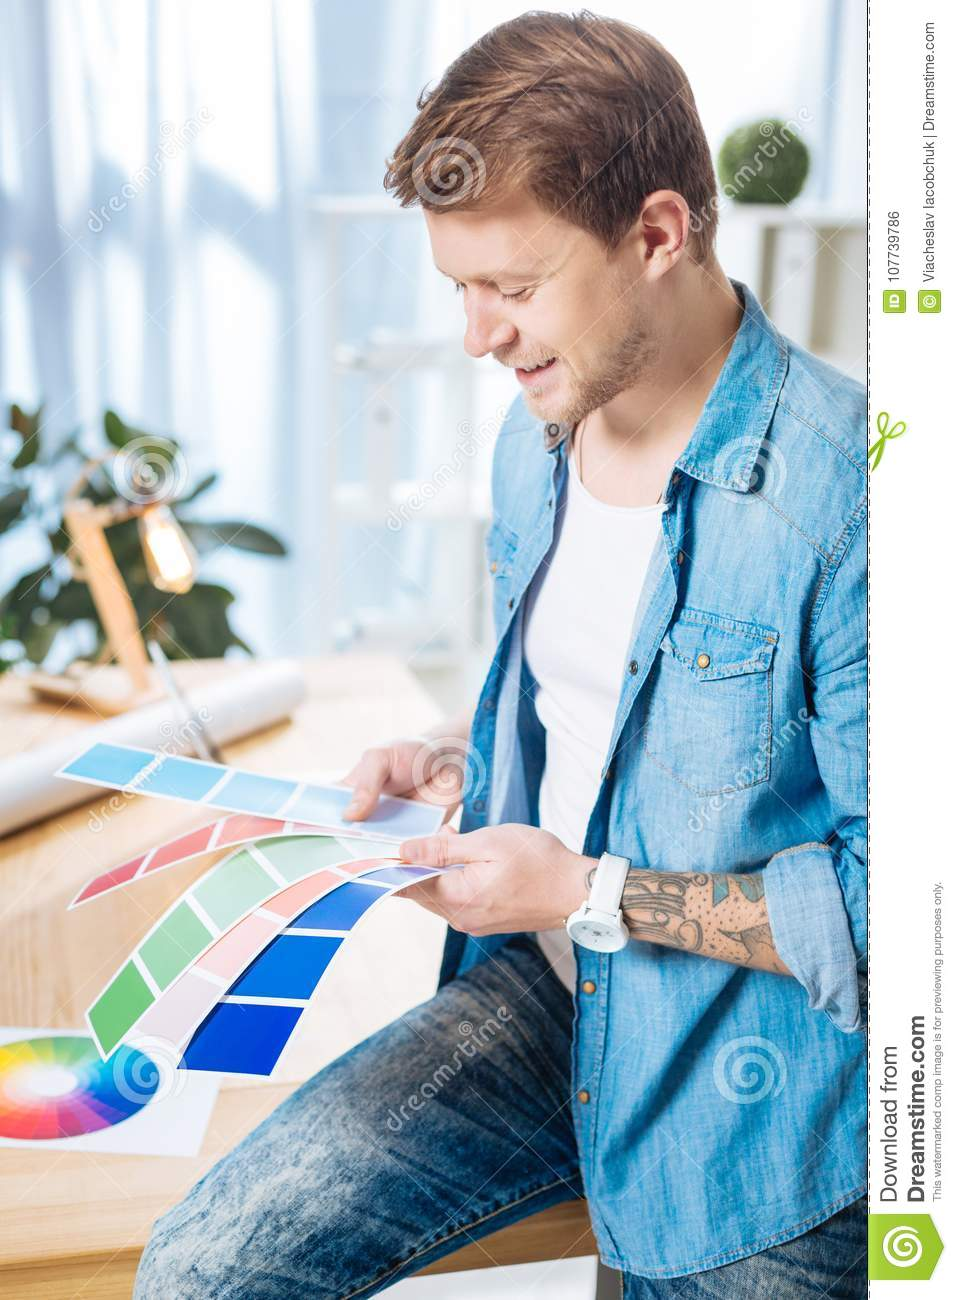 Experienced designer holding color palettes and smiling happily